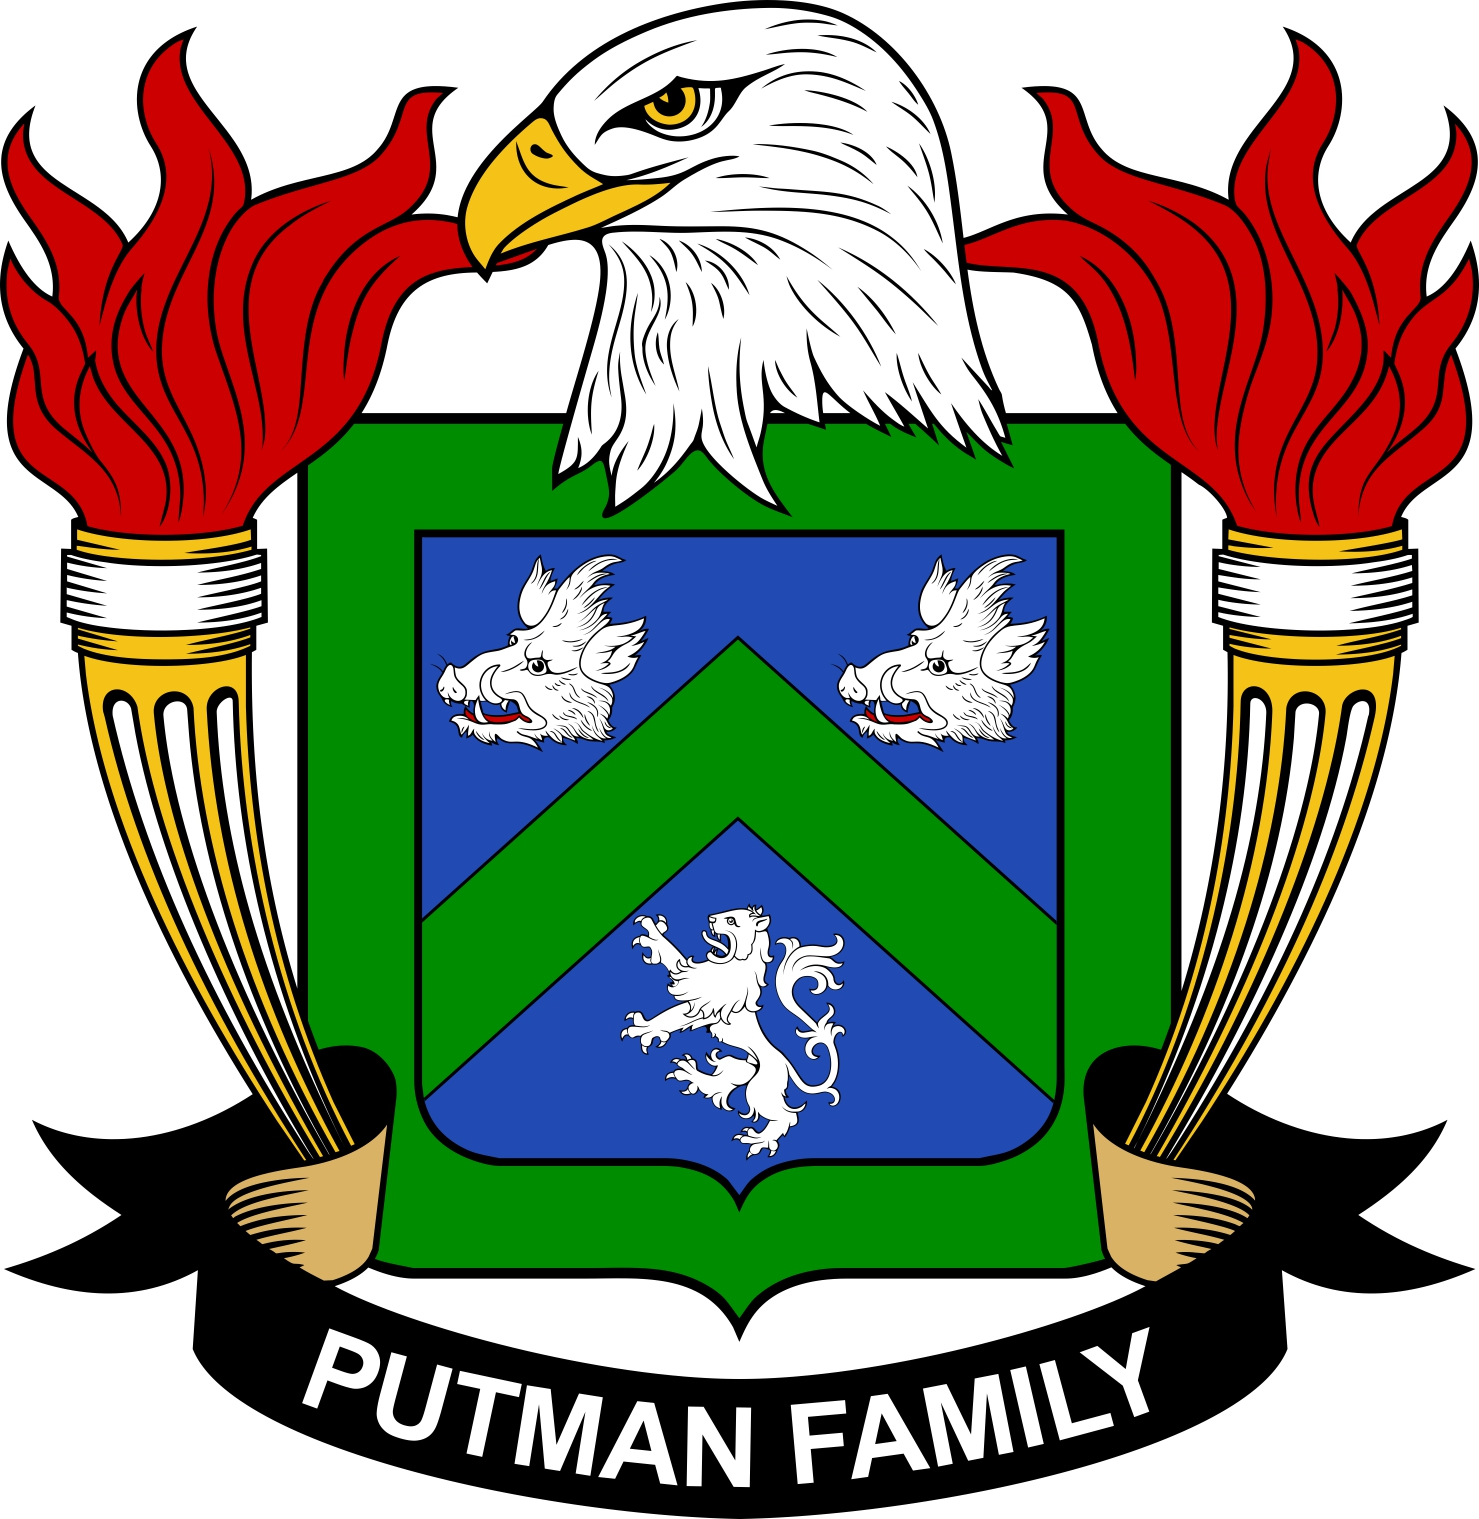 The Putman Family Coat of Arms